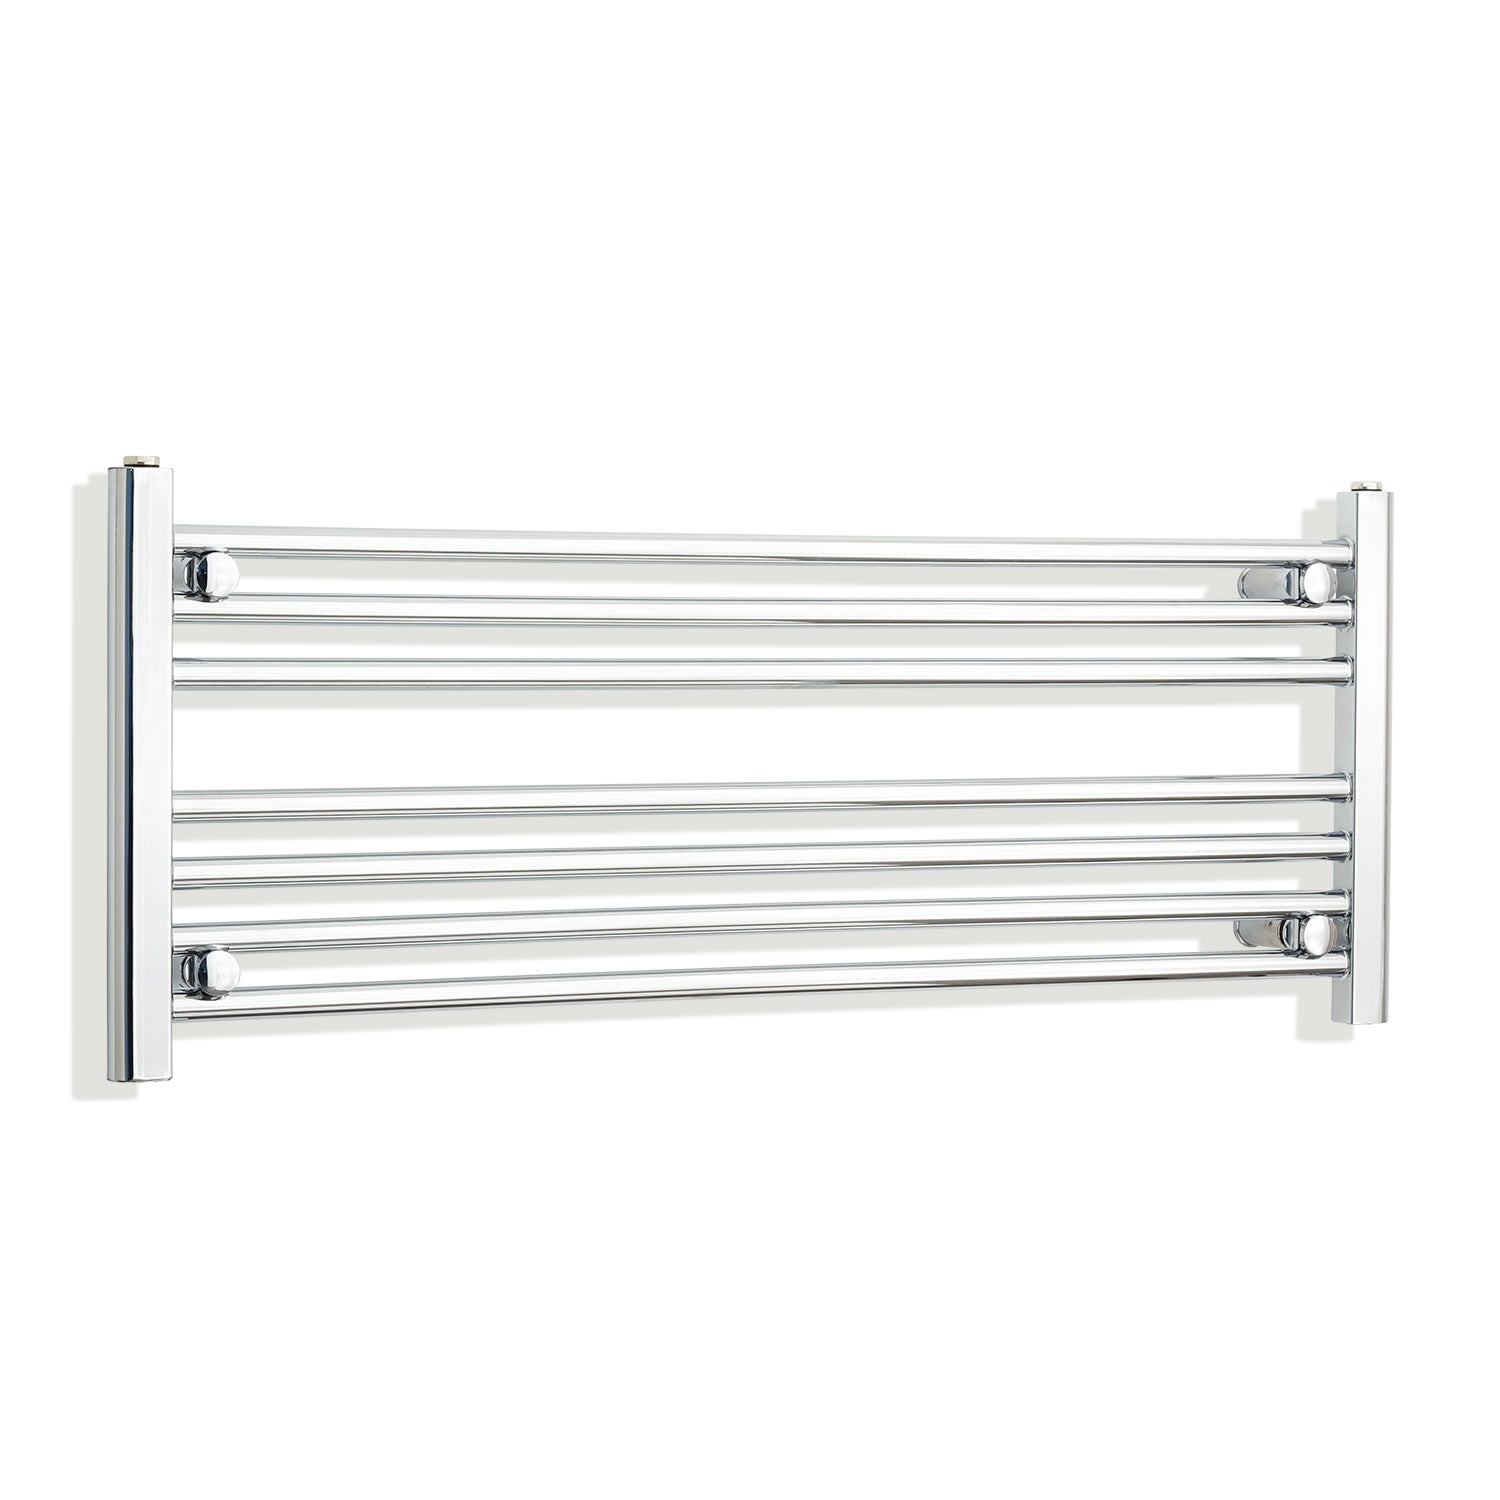 1300mm Wide 400mm High Chrome Towel Rail Radiator